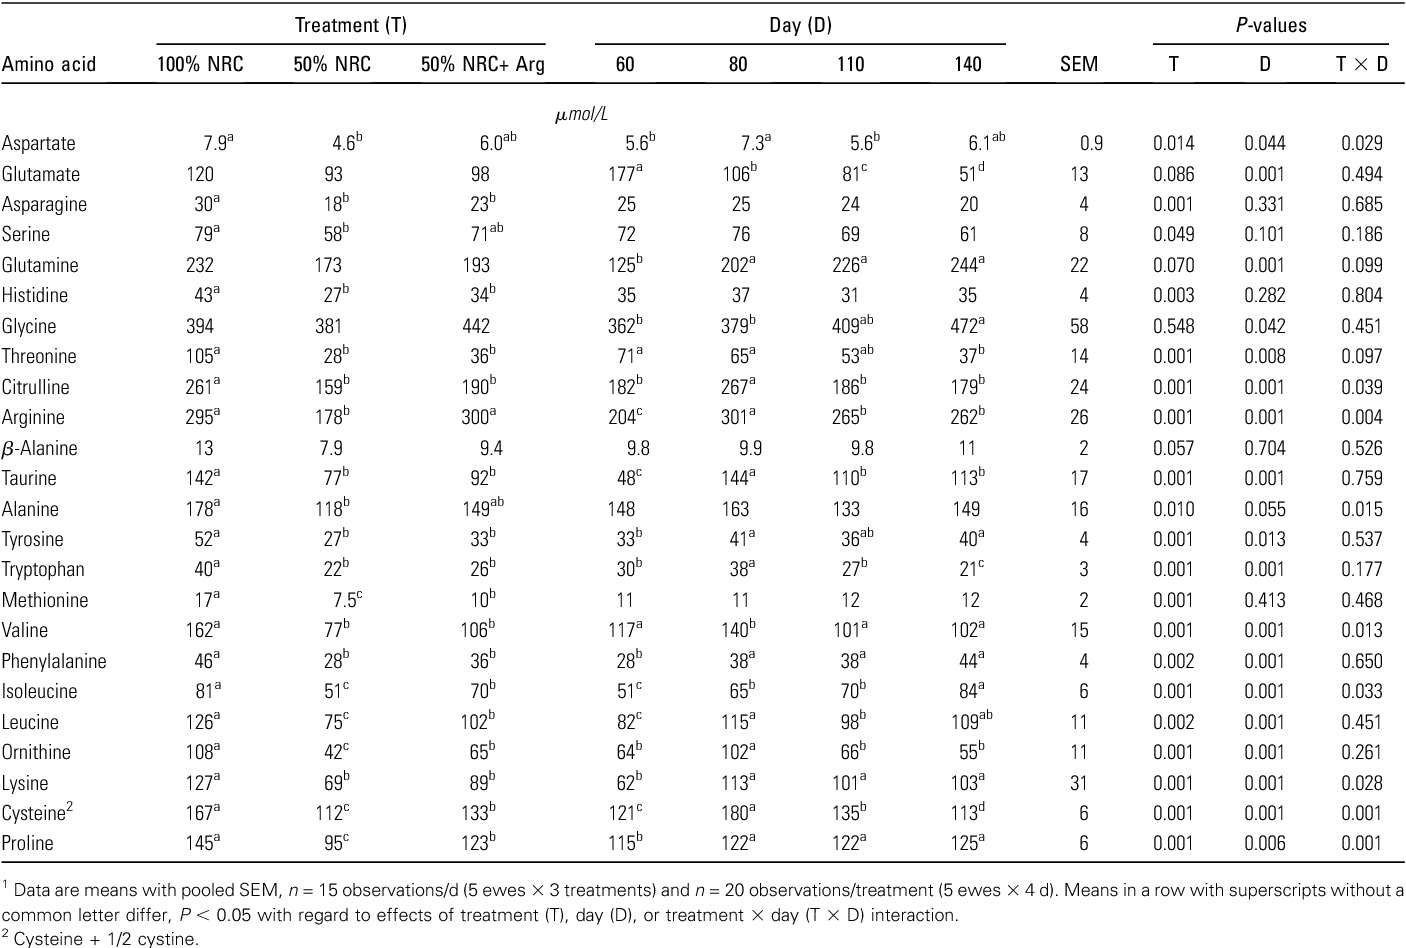 TABLE 3 Serum concentrations of amino acids on d 60, 80, 110, and 140 of pregnancy in ewes fed 100% NRC, 50% NRC, or 50% NRC + Arg diets1